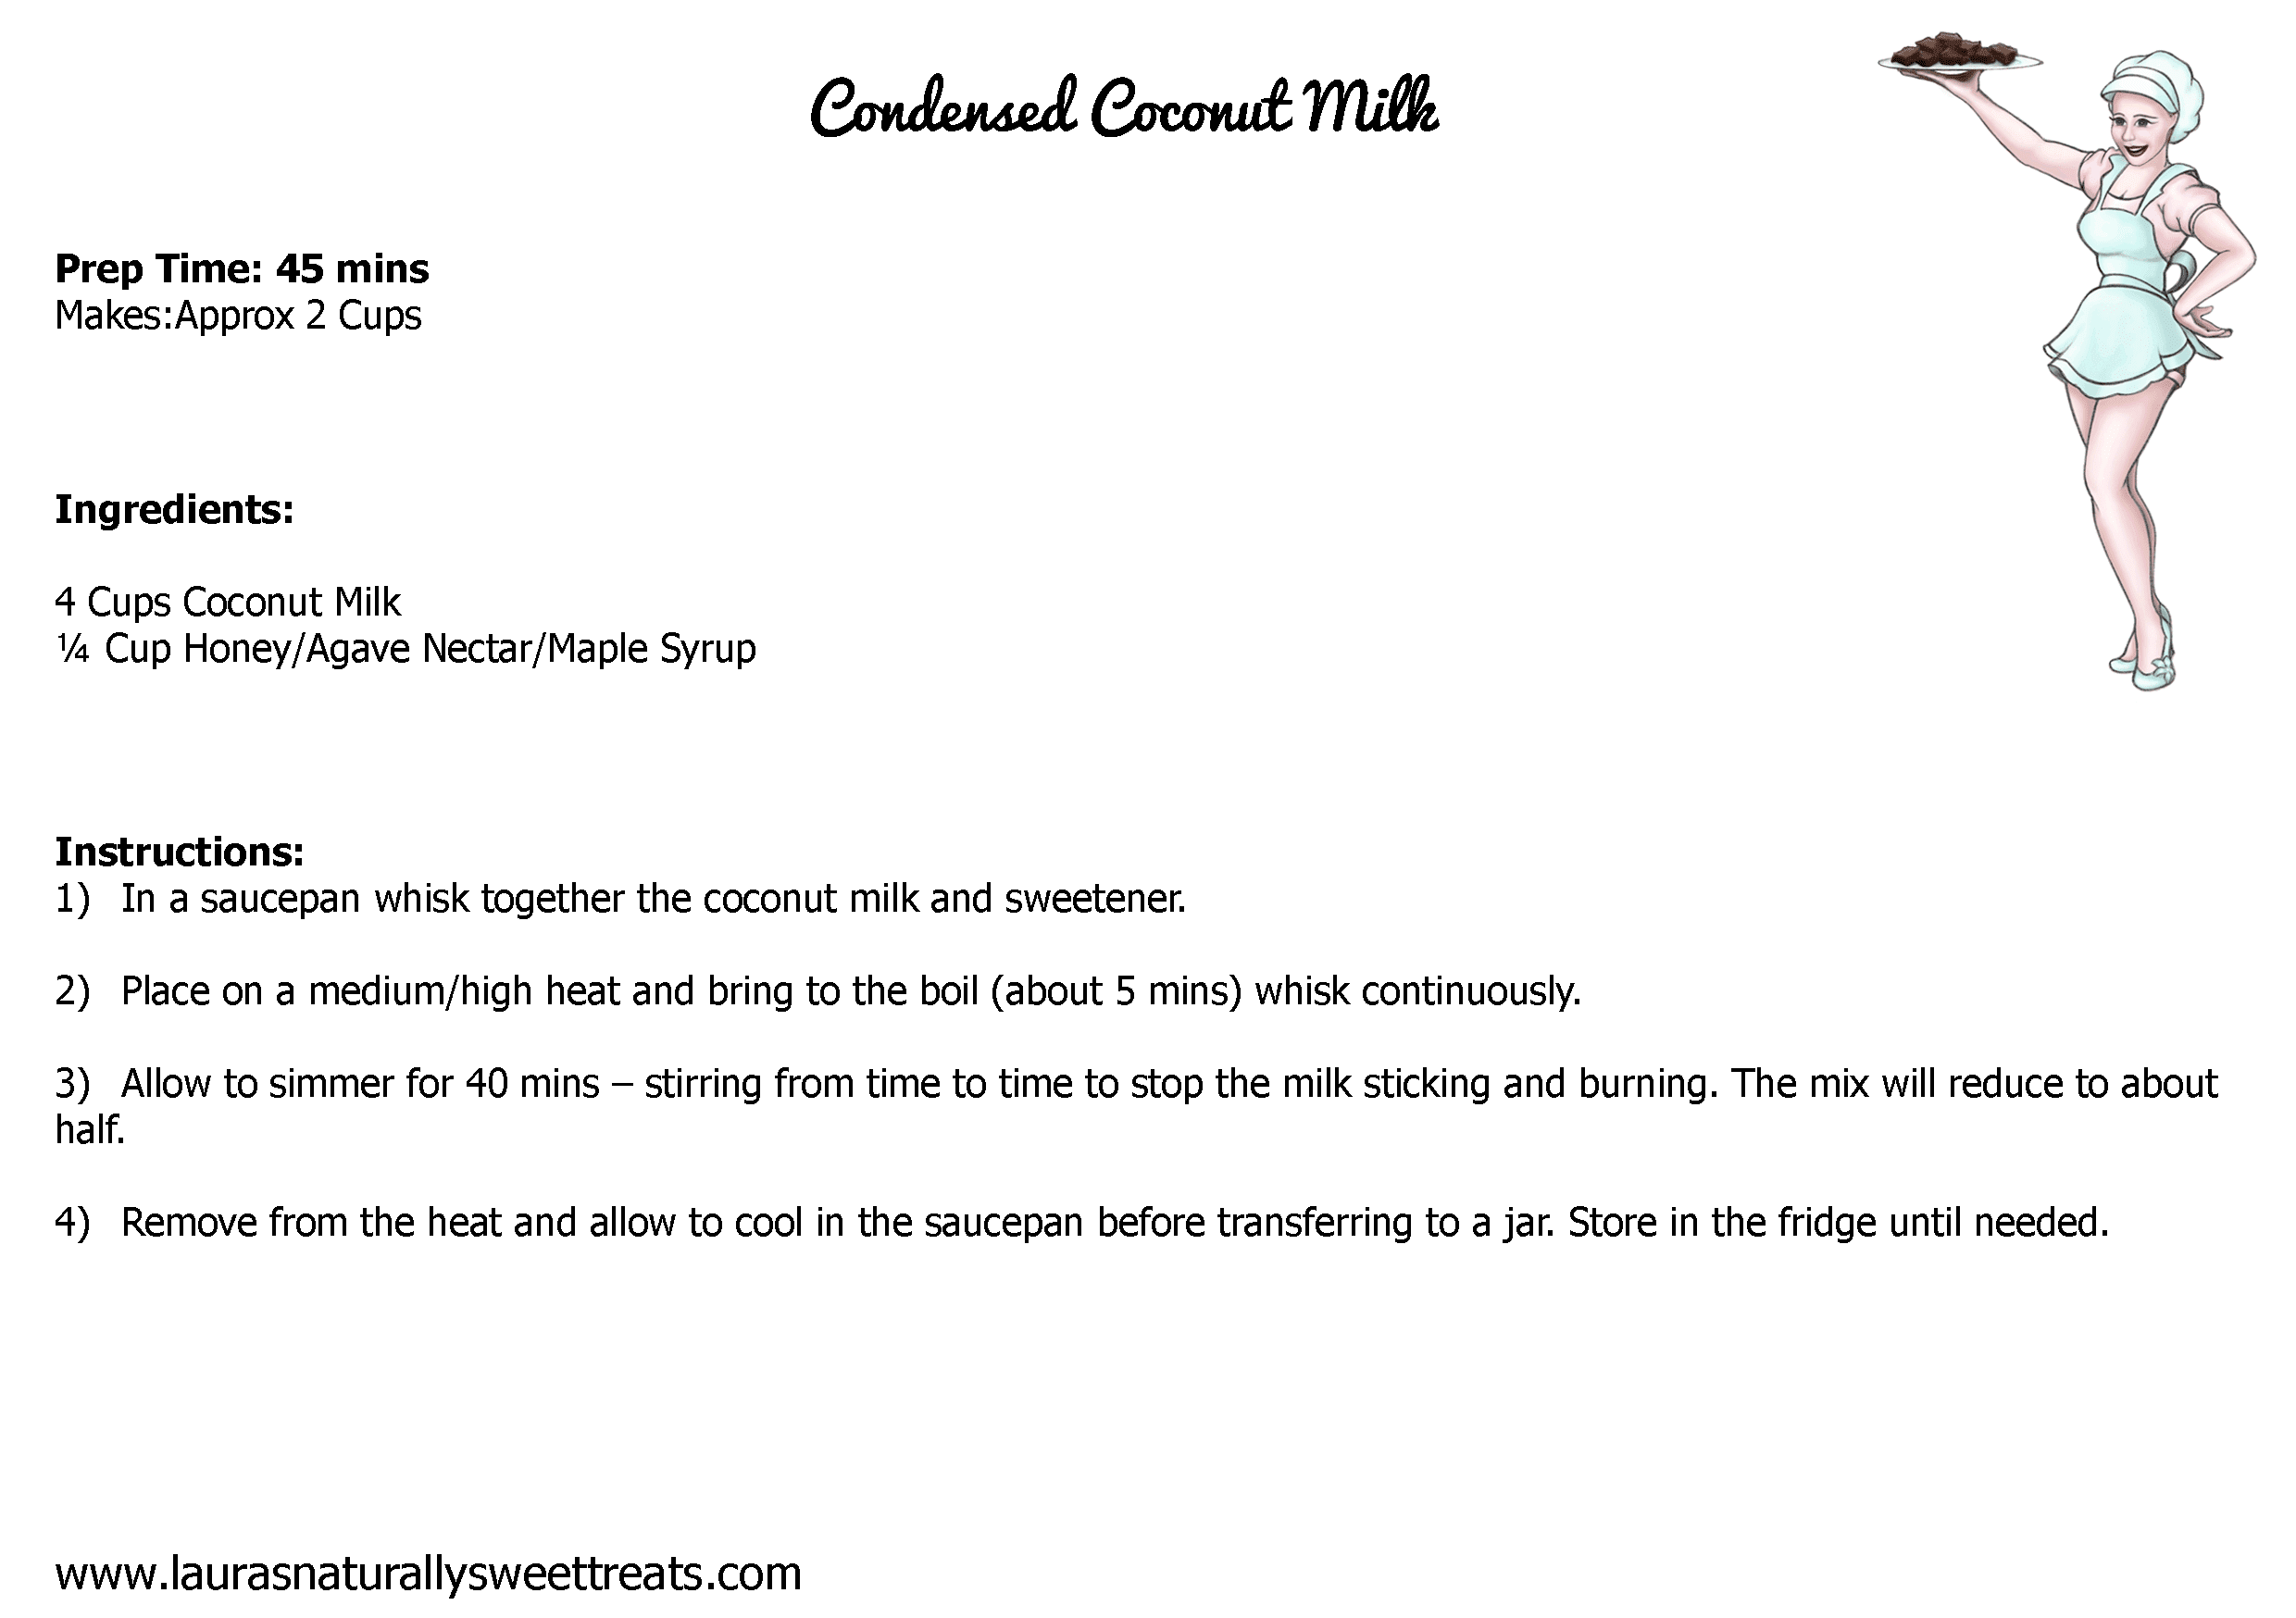 condensed coconut milk recipe card